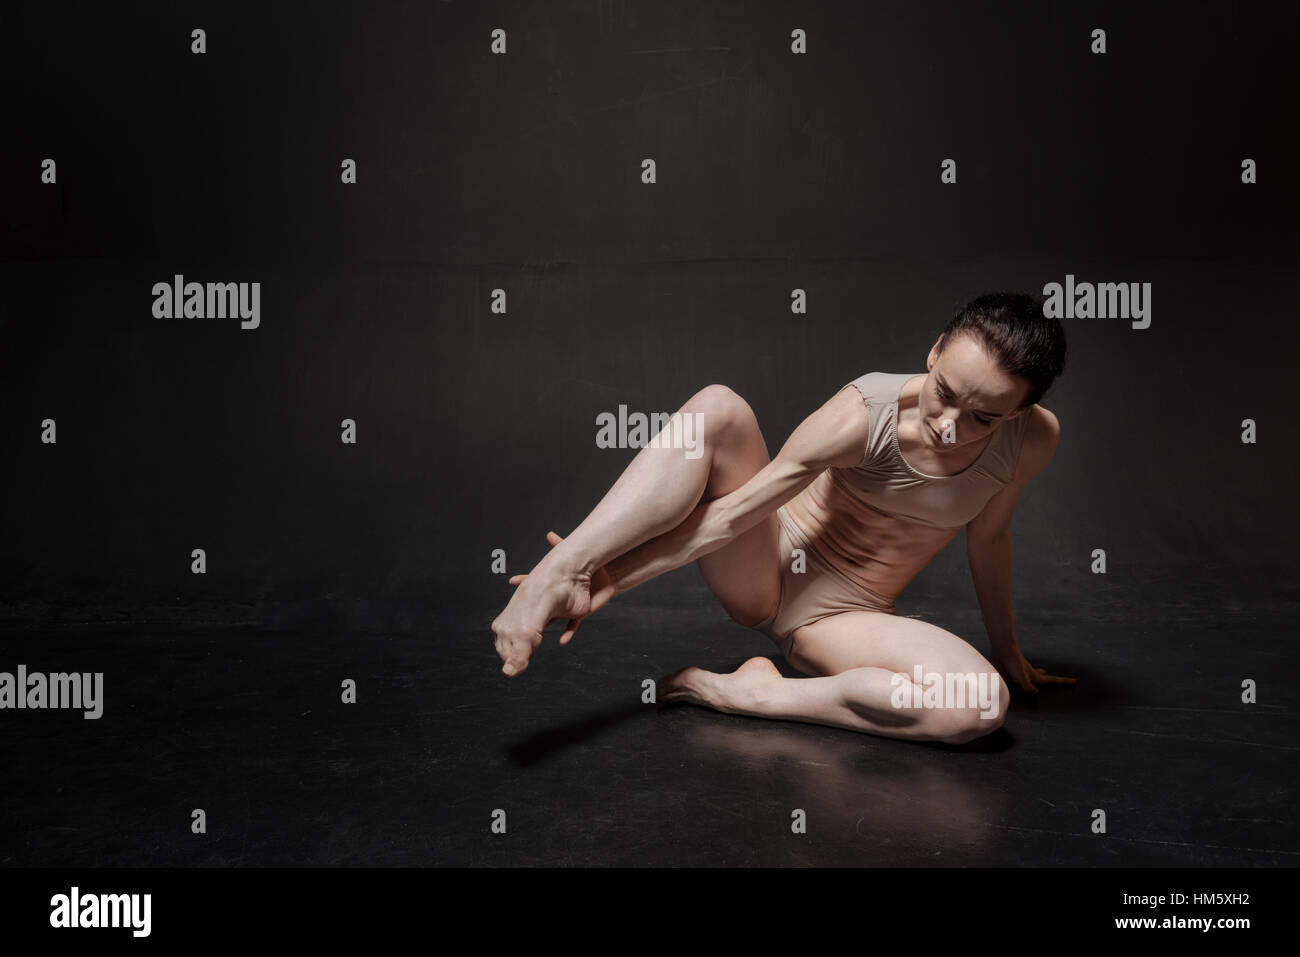 Unemotional young ballet dancer stretching in the studio - Stock Image